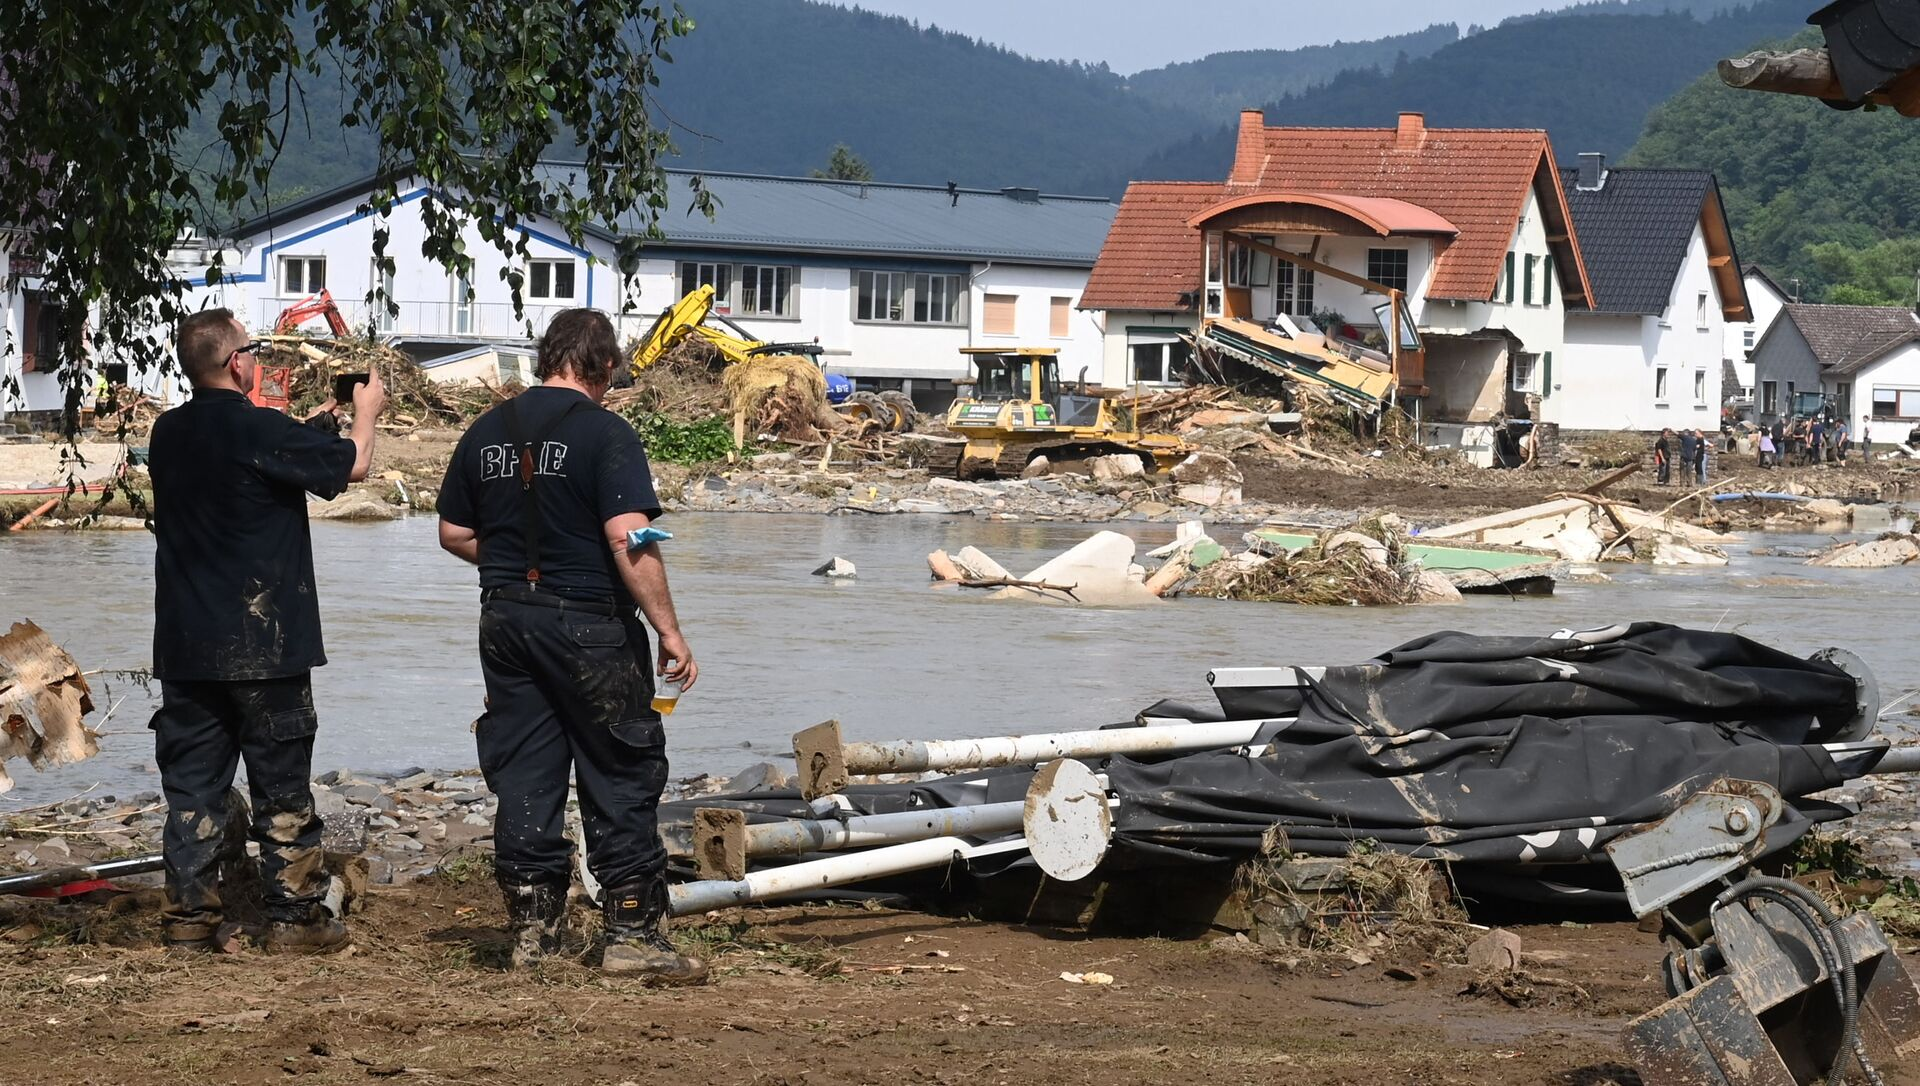 A worker (L) takes a picture of a destroyed area in Insul near Bad Neuenahr-Ahrweiler, western Germany, on July 17, 2021. - Devastating floods in Germany and other parts of western Europe have been described as a catastrophe, a war zone and unprecedented, with more than 150 people dead and the toll still climbing on July 17, 2021 - Sputnik International, 1920, 28.07.2021